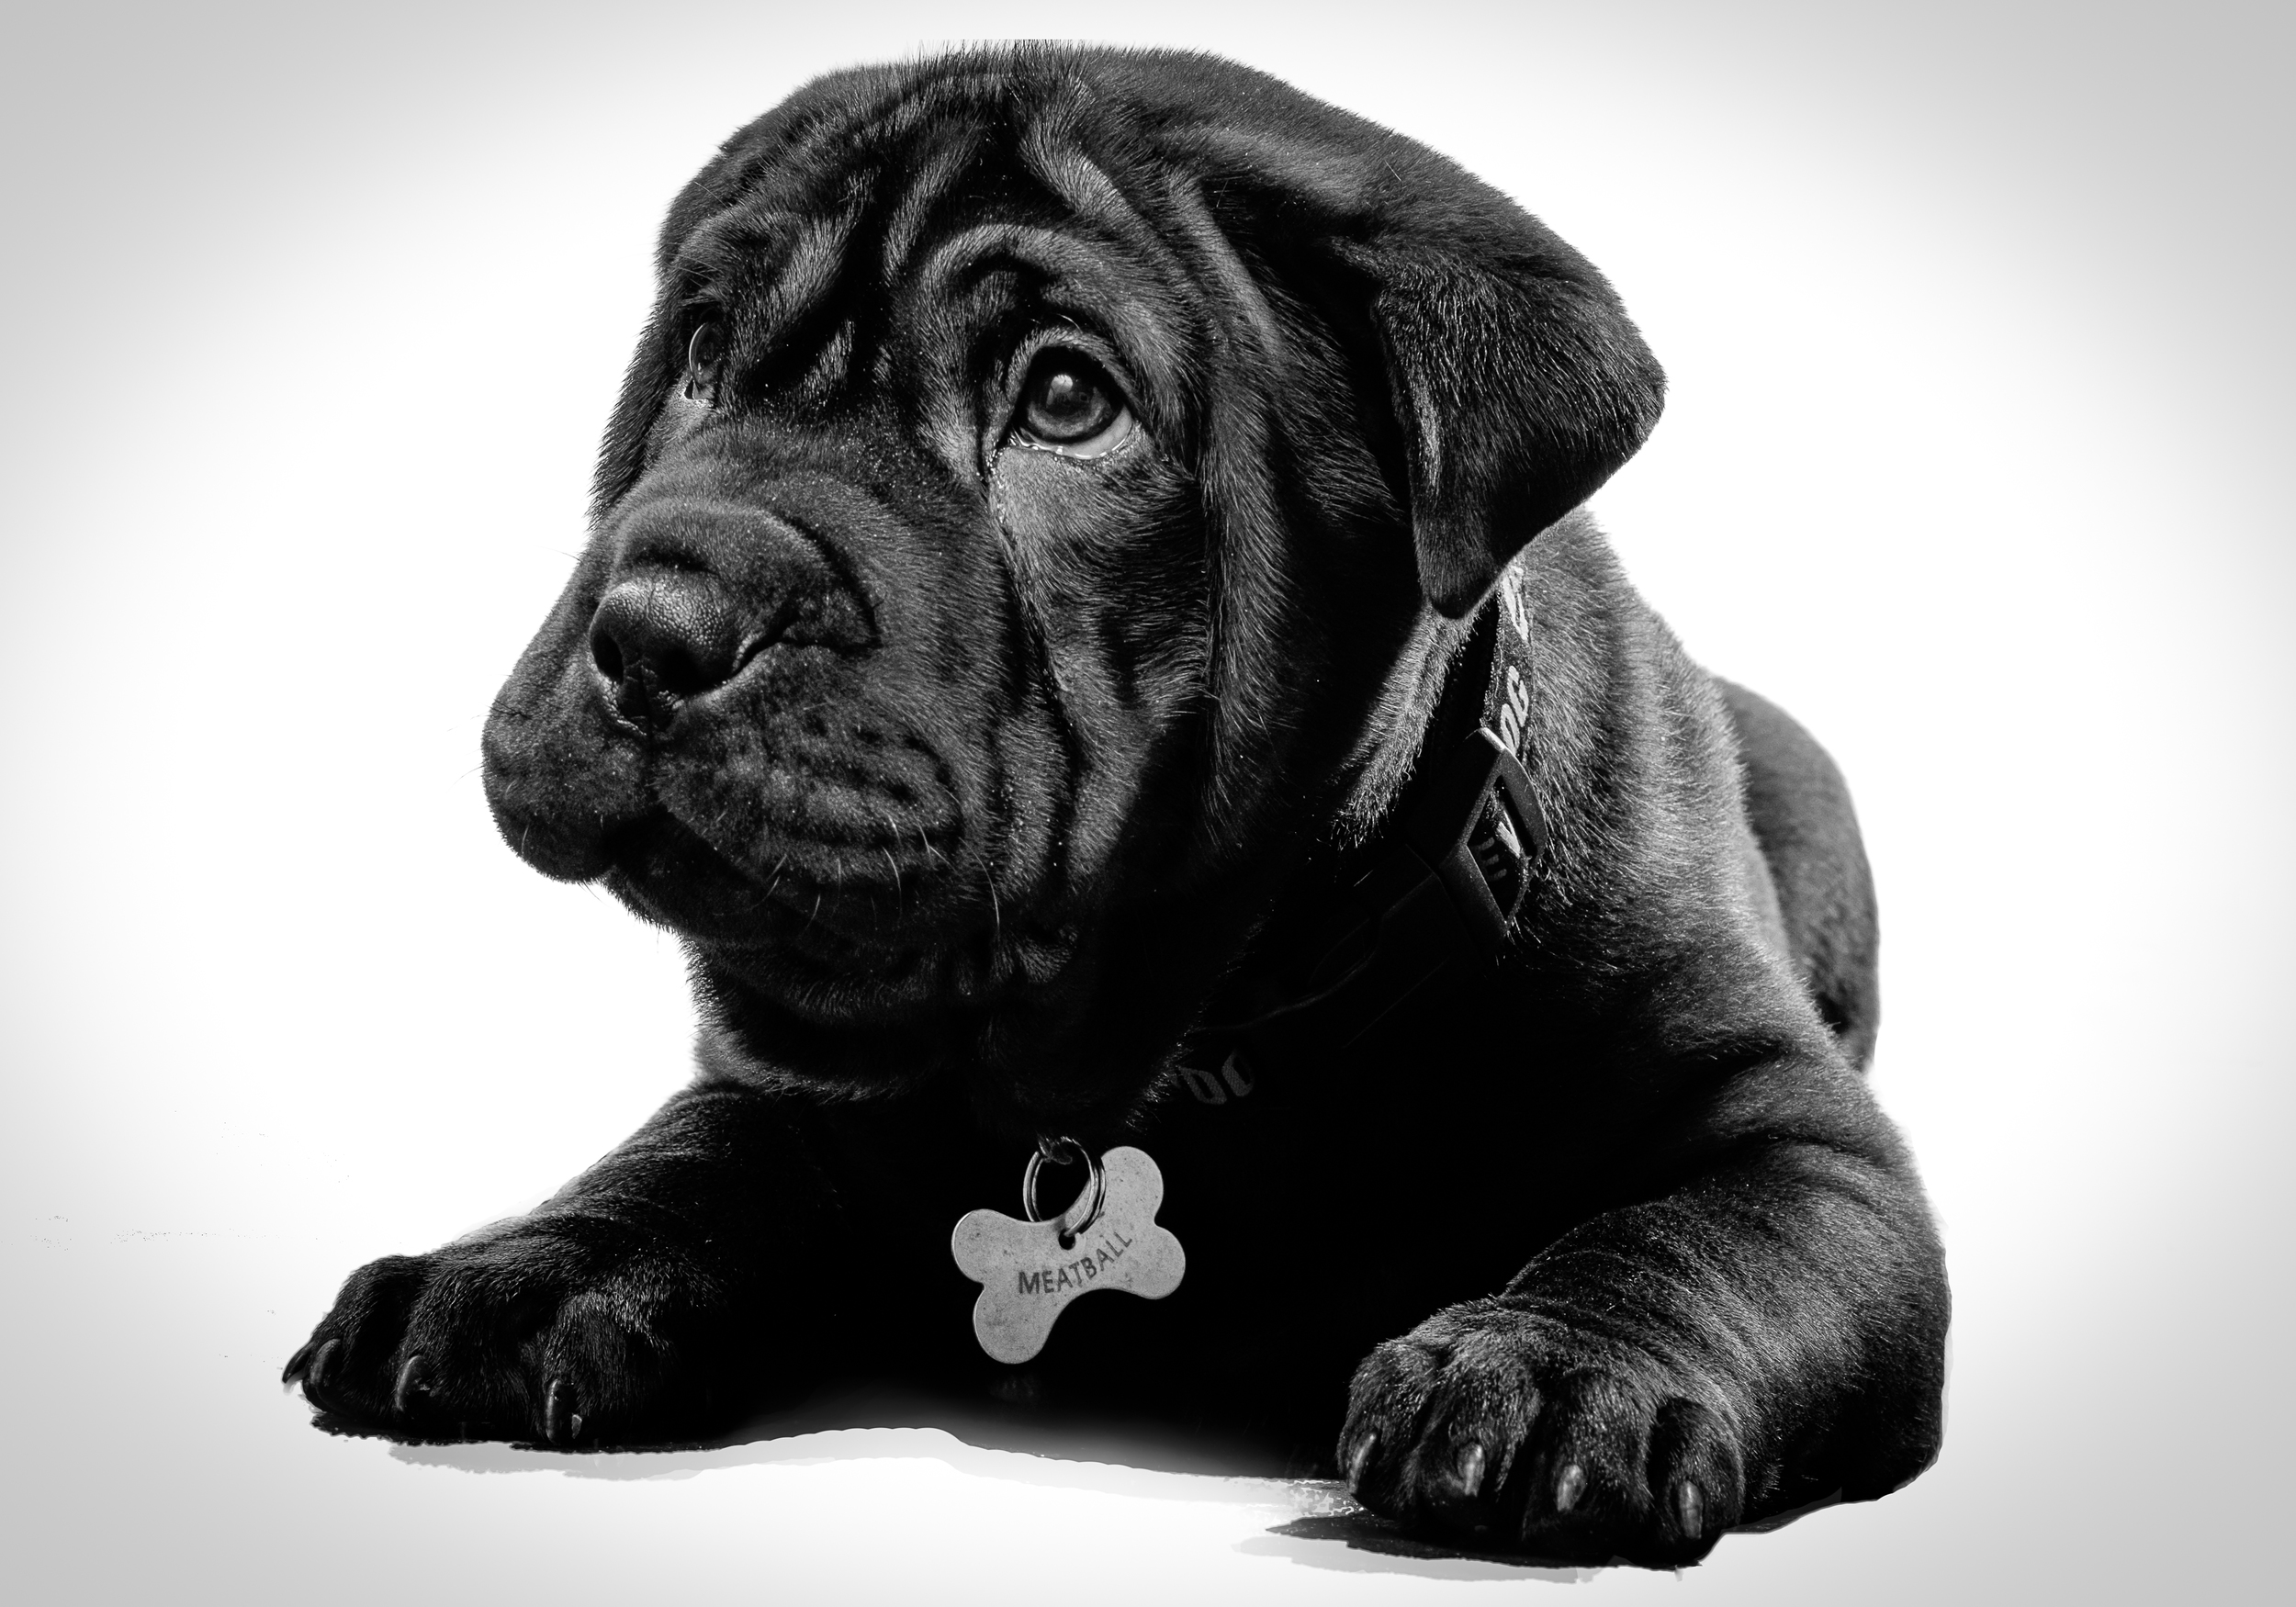 Bull-Pei puppy dog portrait in black and white with the dog, Meatball lying down facing the camera.